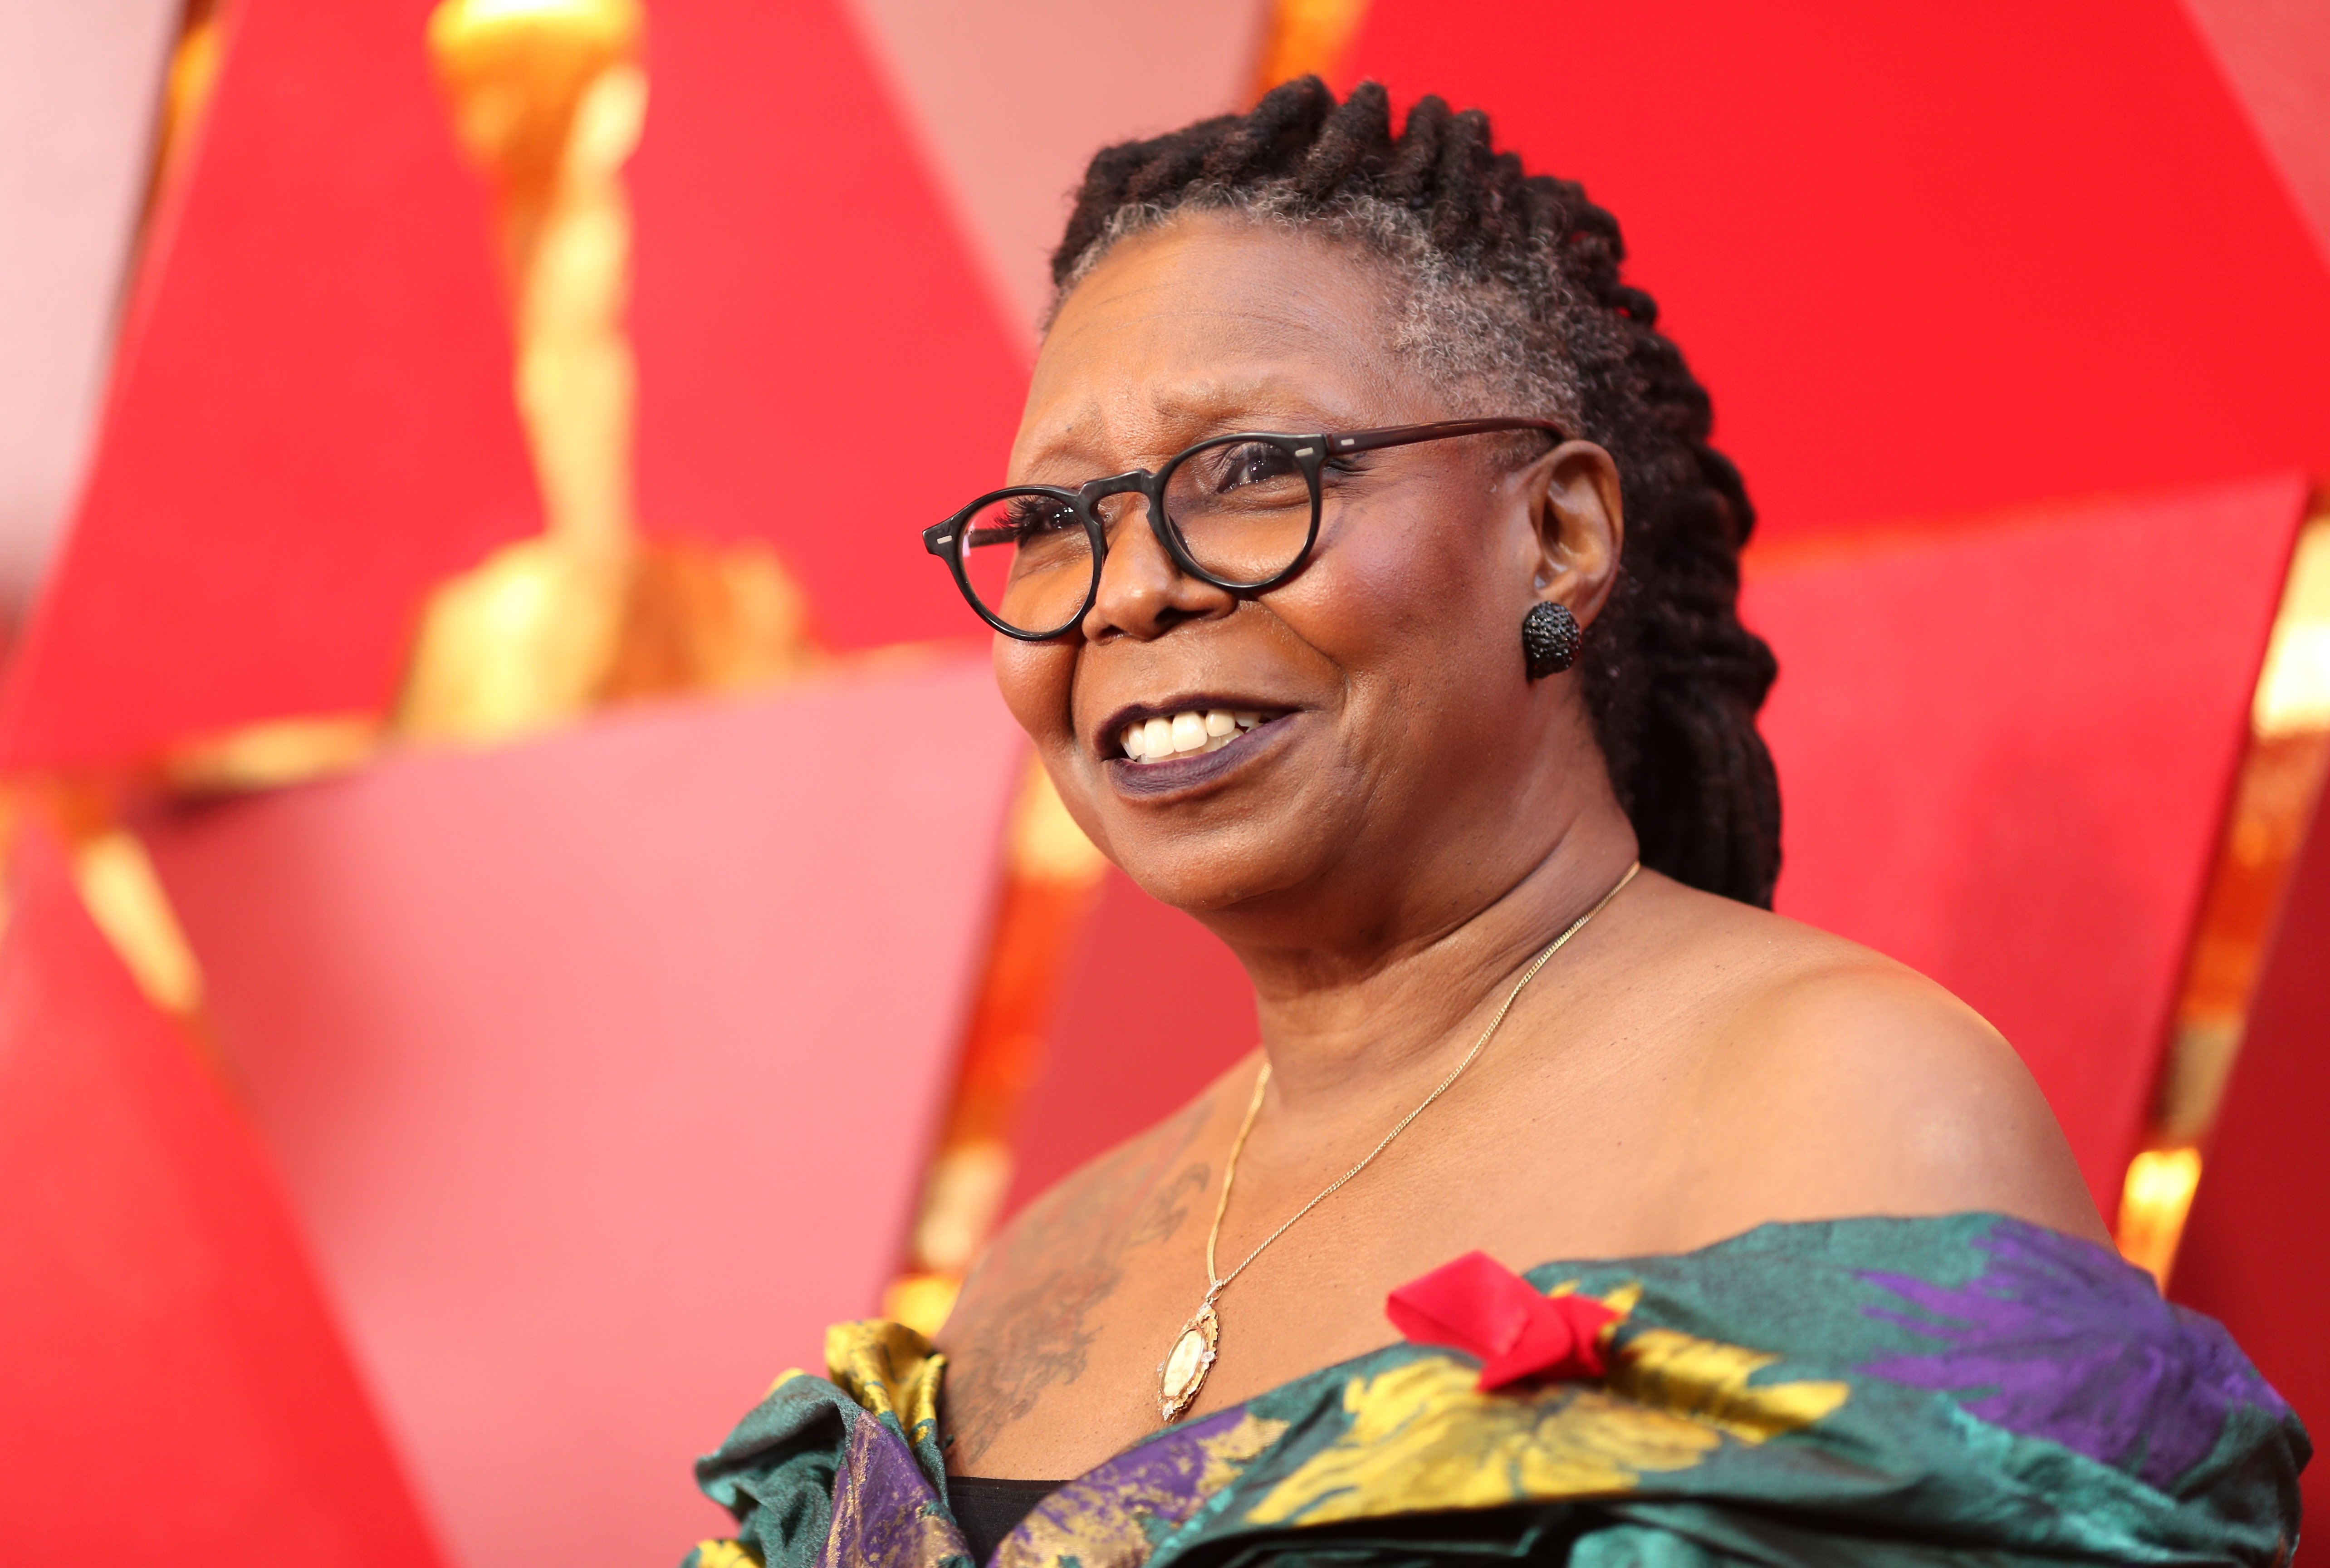 Whoopi Goldberg attends the 90th Annual Academy Awards at Hollywood & Highland Center on March 4, 2018 in Hollywood, California | Photo: Getty Images